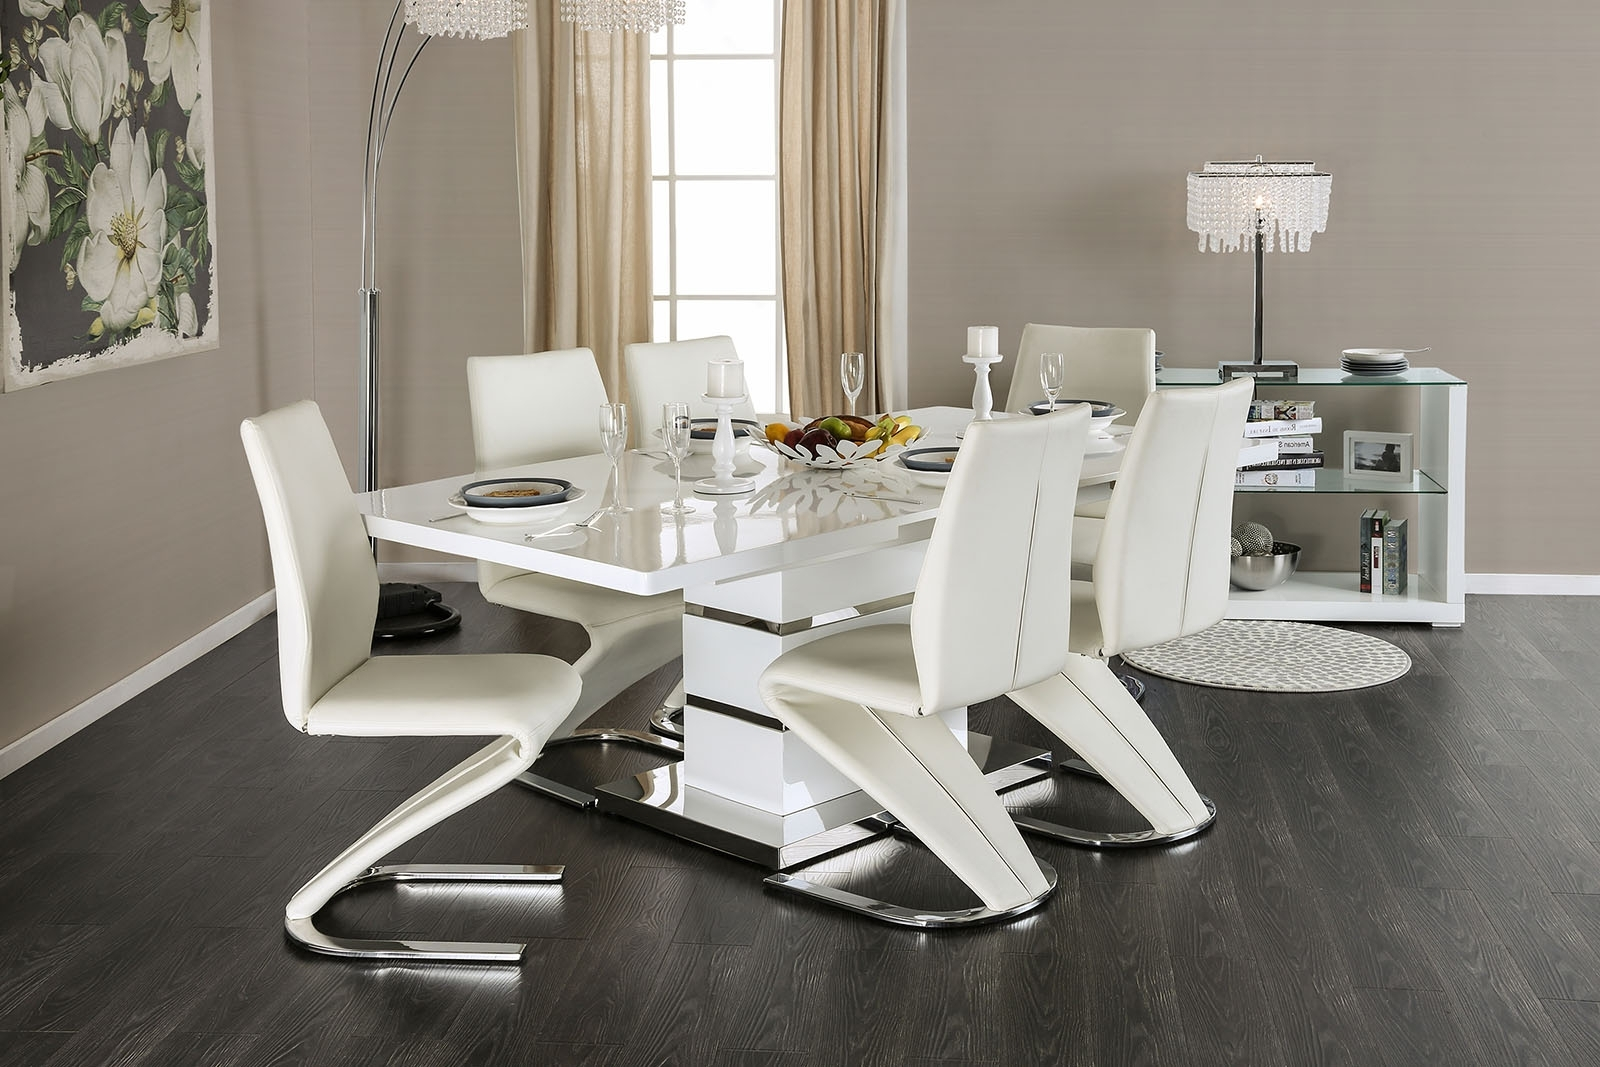 Most Current Midvale Contemporary Style White High Gloss Lacquer Finish & Chrome Throughout Chrome Dining Room Sets (View 17 of 25)